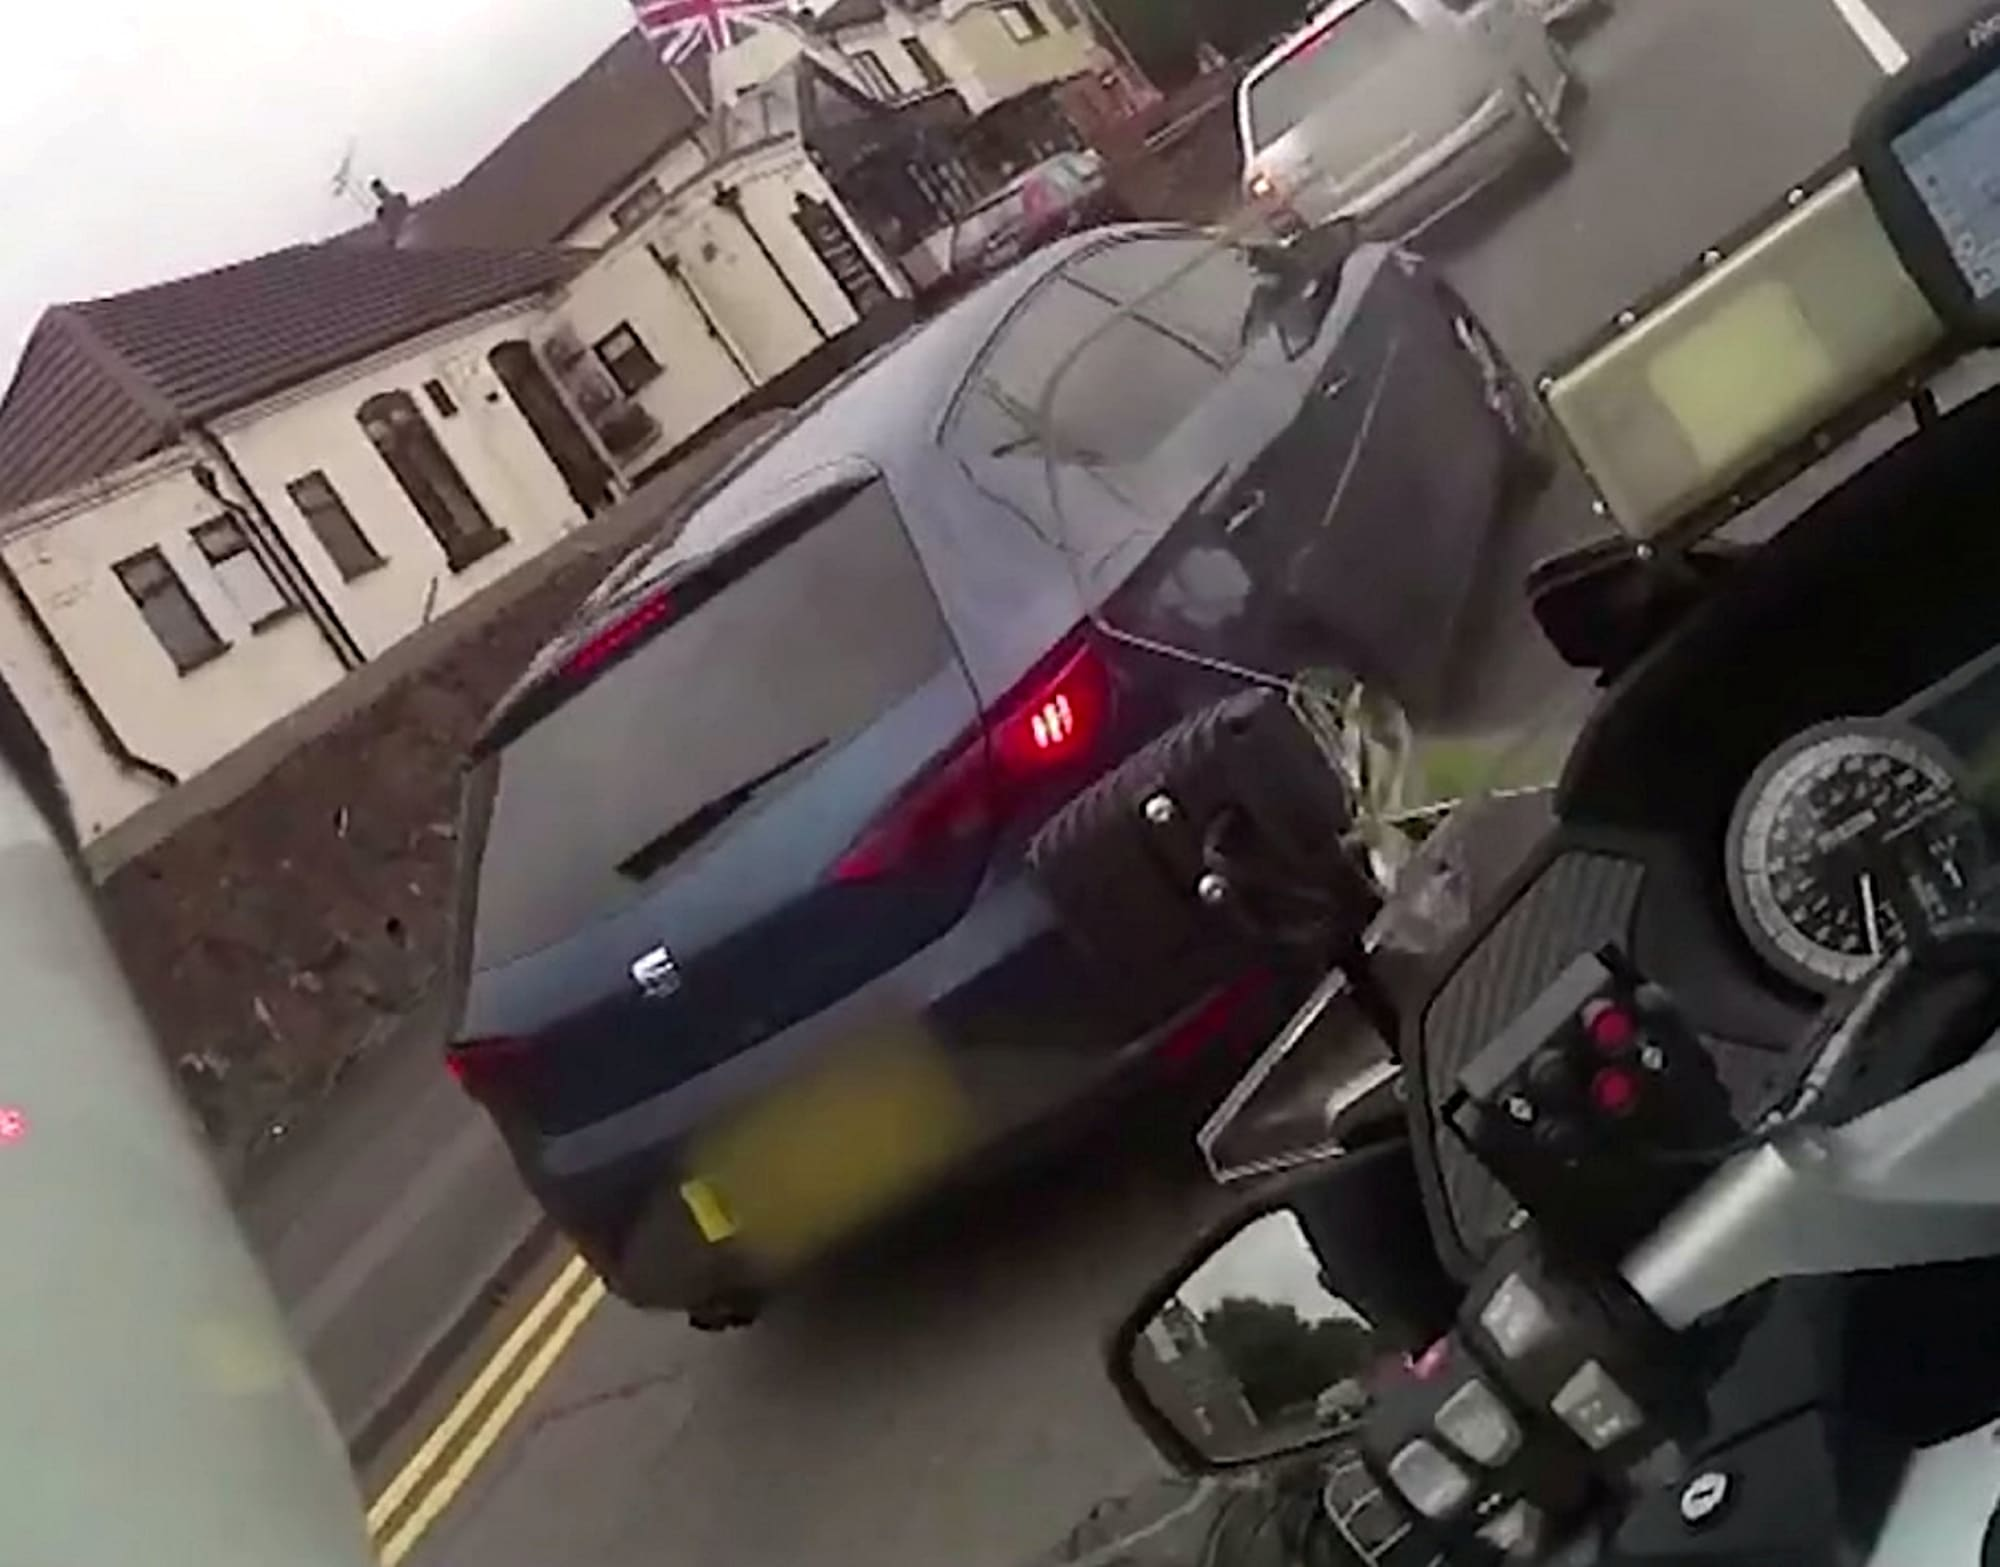 Teen yob facing jail after shocking footage captured him ramming a police motorcycle rider off his bike in stolen car